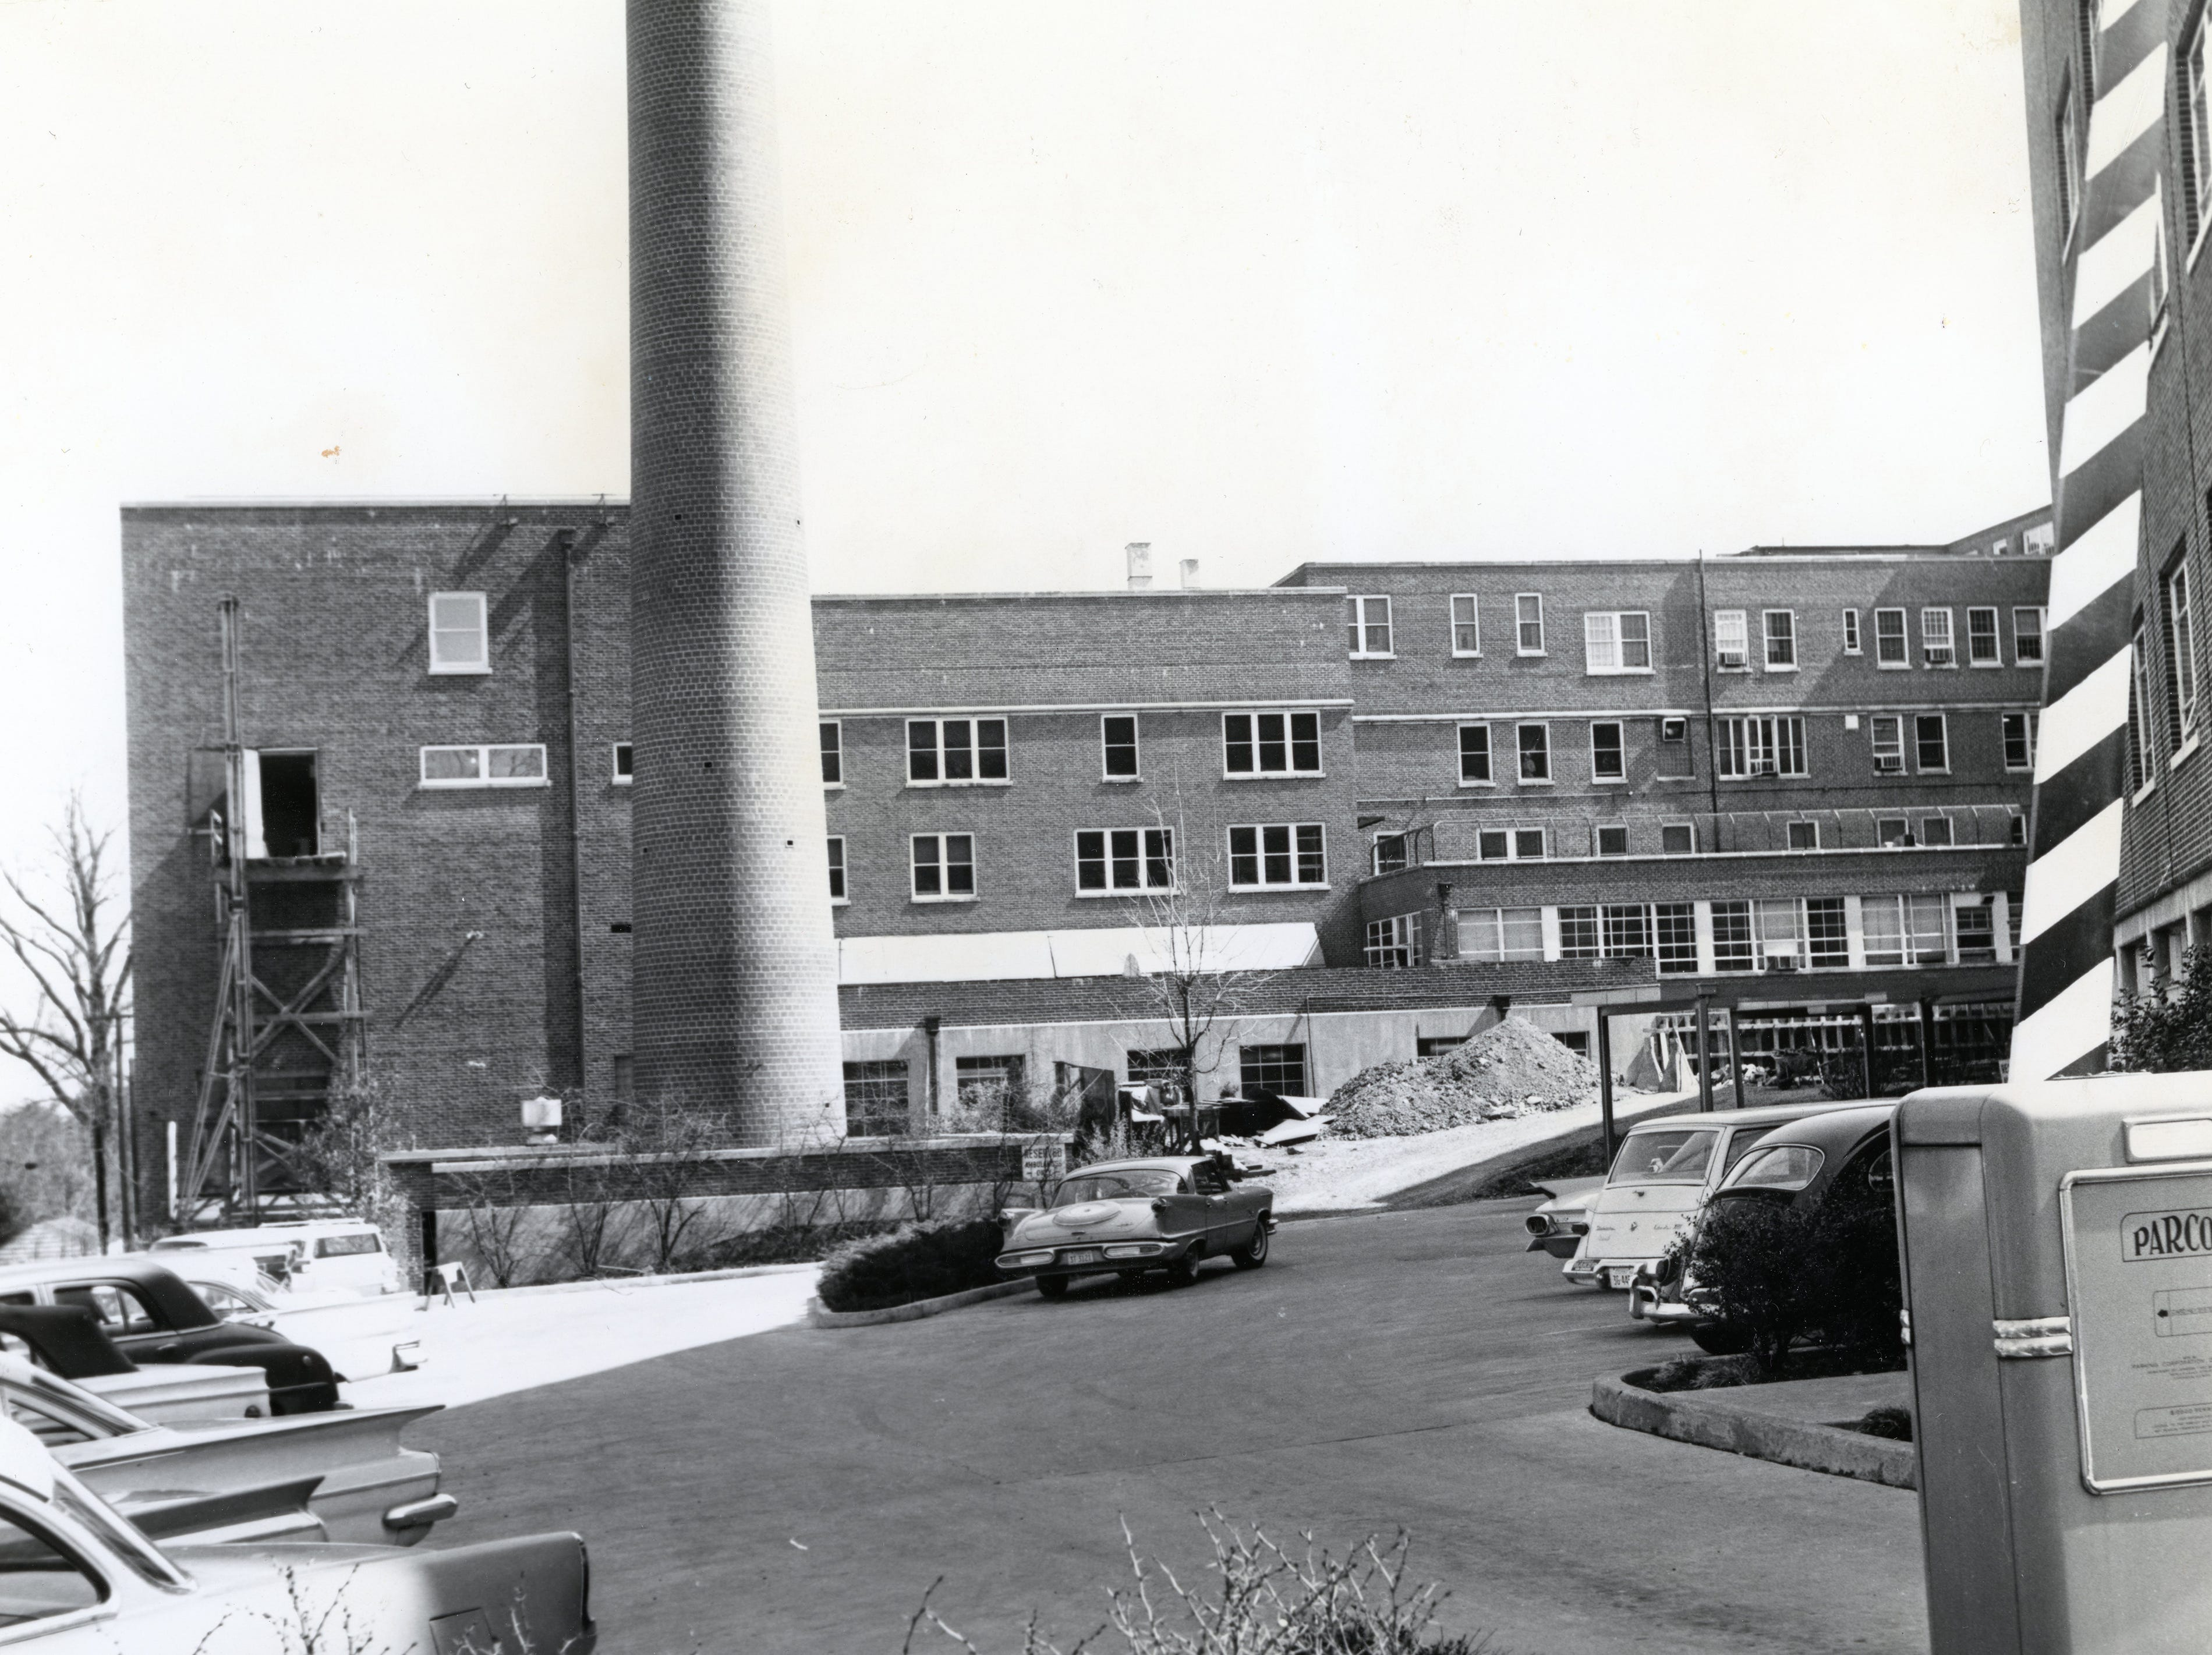 St. Mary's Hospital in April 1963.